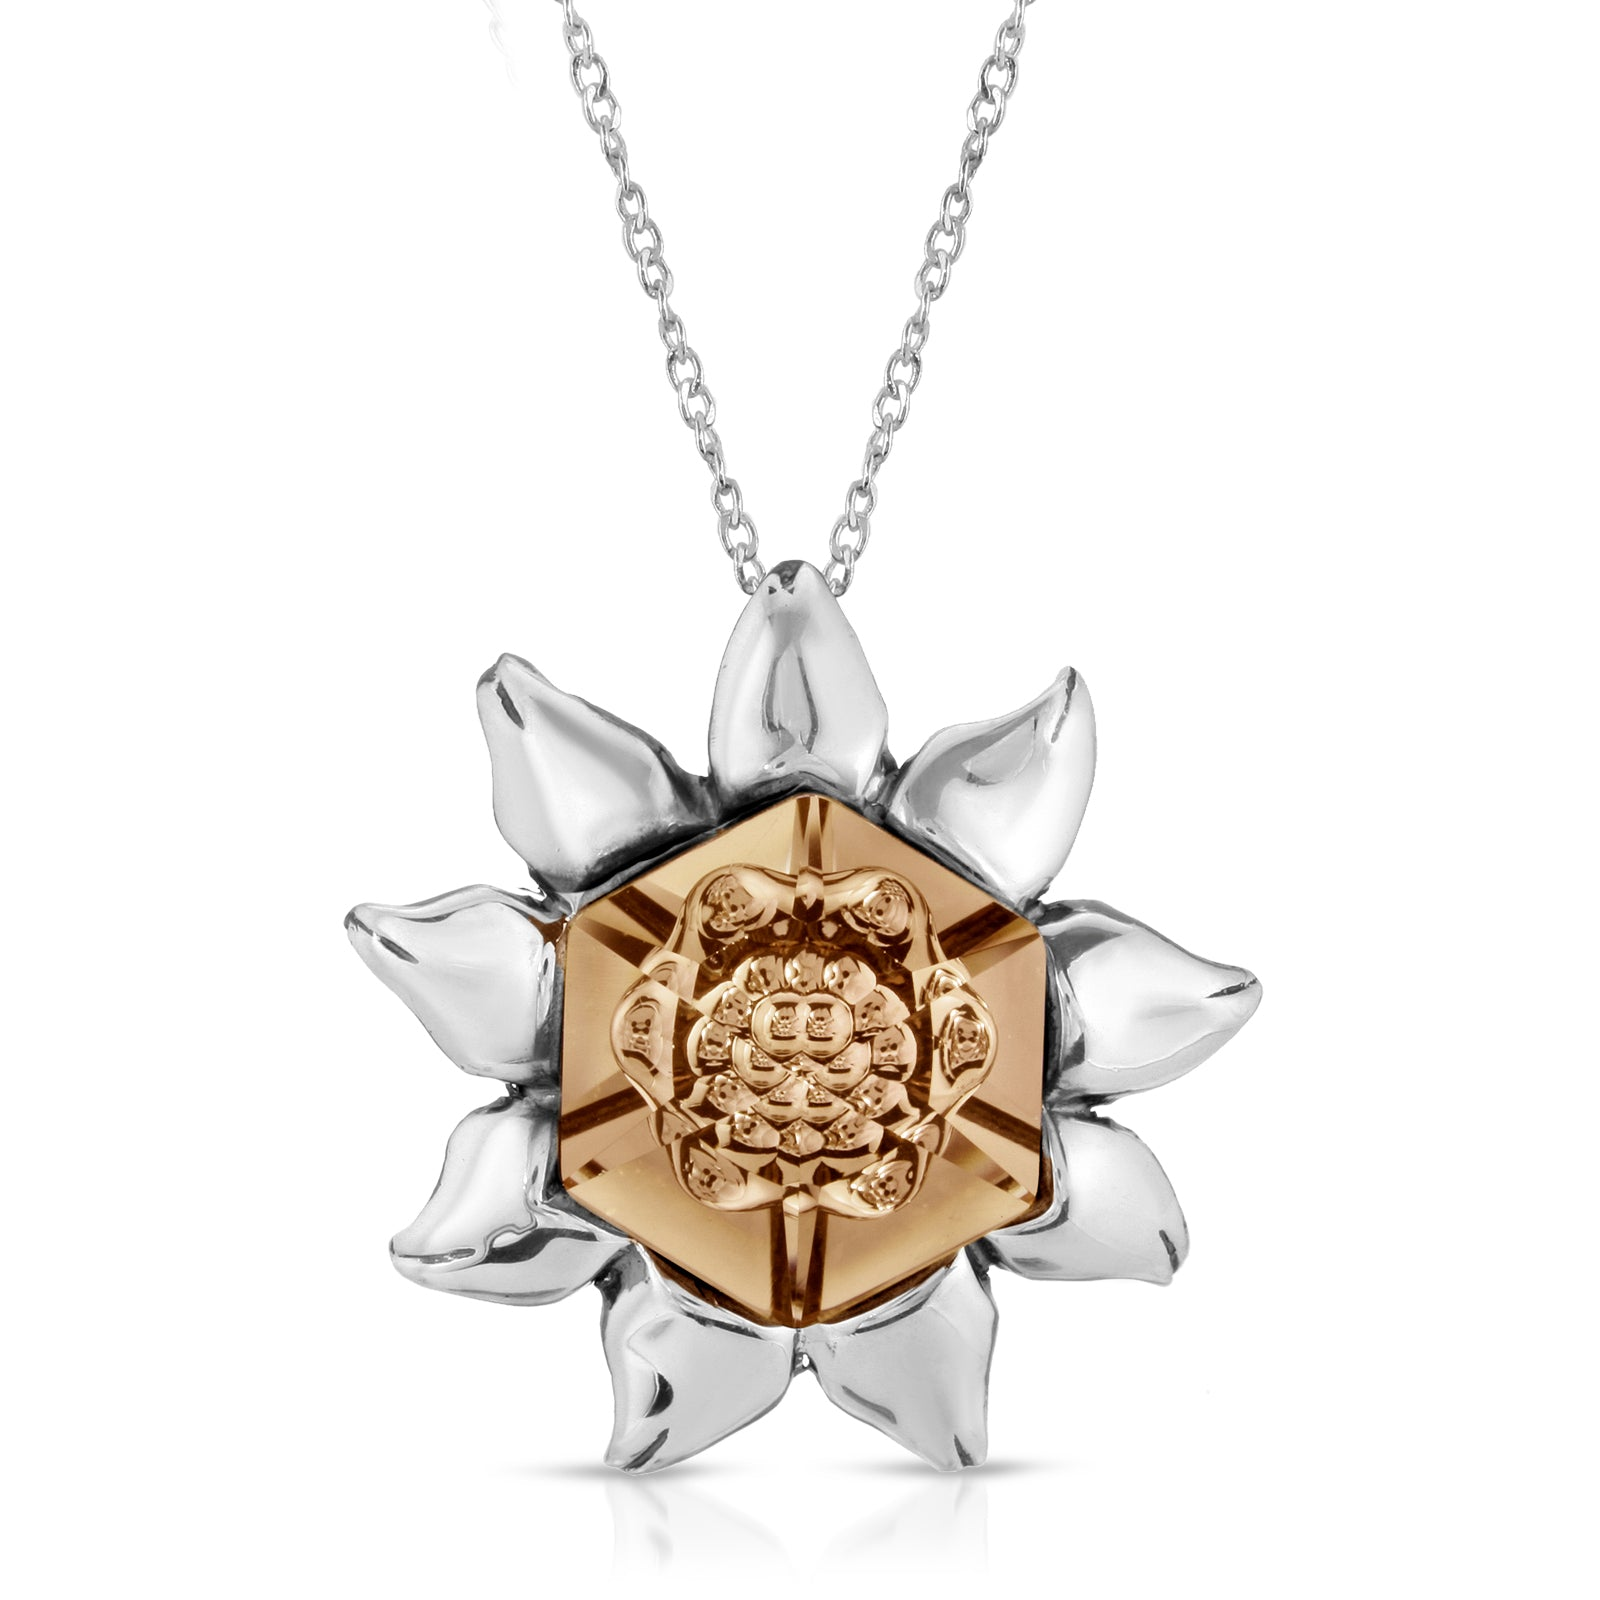 The W Brothers peach swarovski hexagon crystal blossom necklace pendant, thewbros swarvoski peach crystal flower blossom pendant necklace for women, Premium A Grade 925 Sterling silver crystal pendant, peach color crystal pendant swarovski crystal collection by thewbrothers